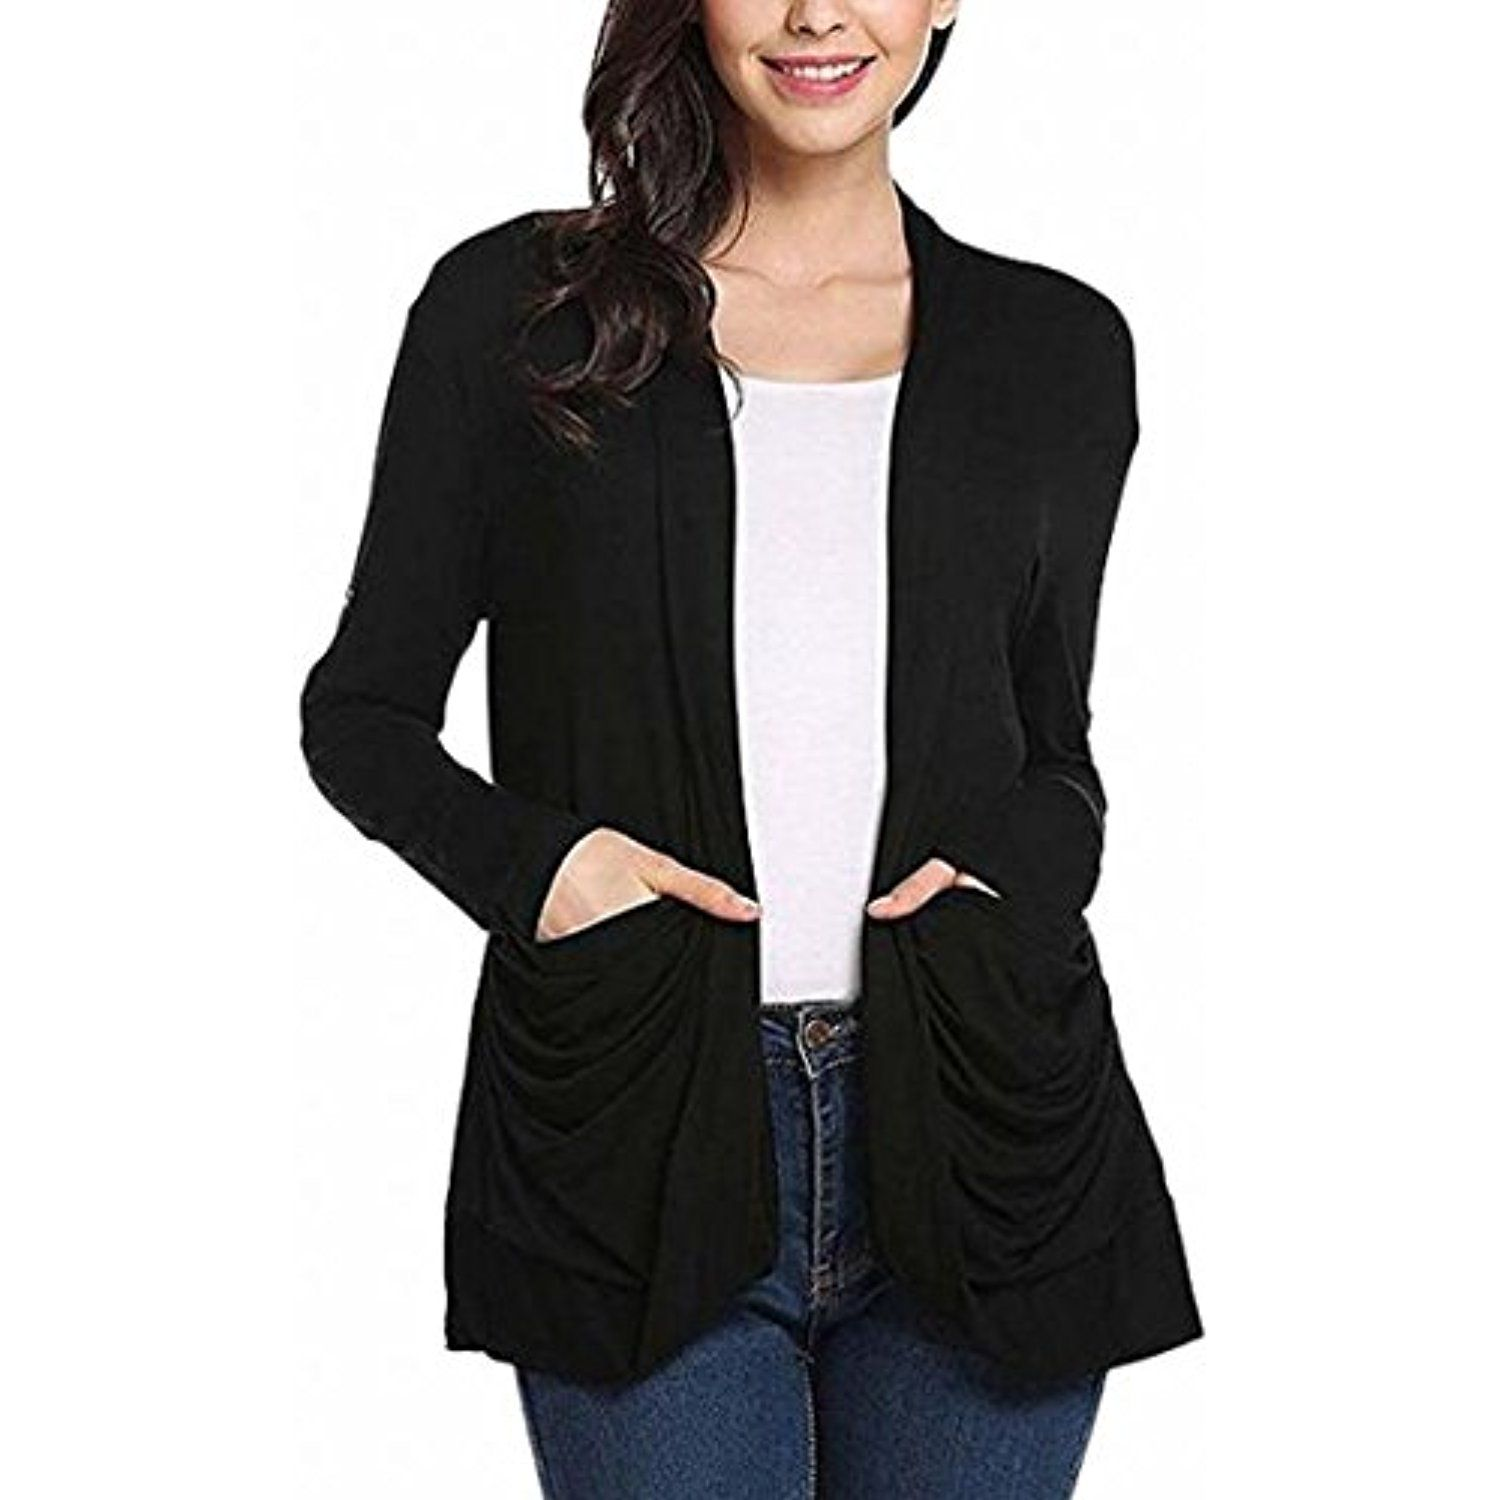 Women's Knitted Cardigan Roll Up Sleeve Open Front Cardigan Coat ...